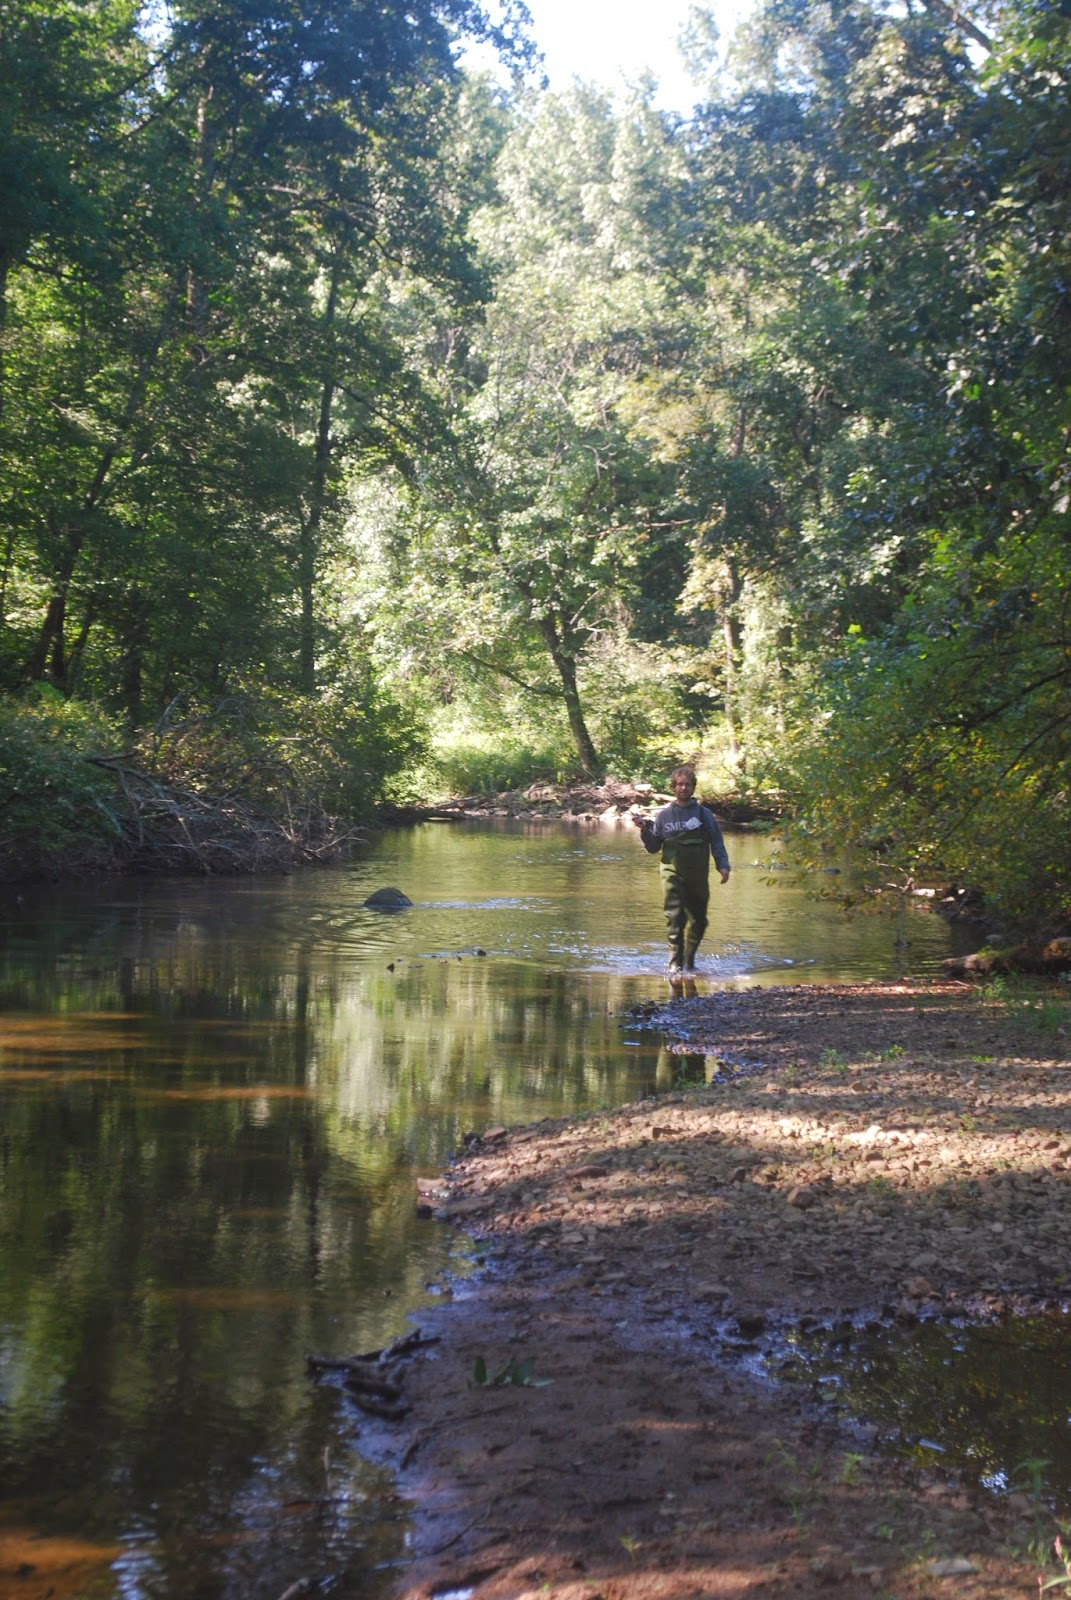 Litton S Fishing Lines Fly Fishing The Claremont South Branch Raritan River